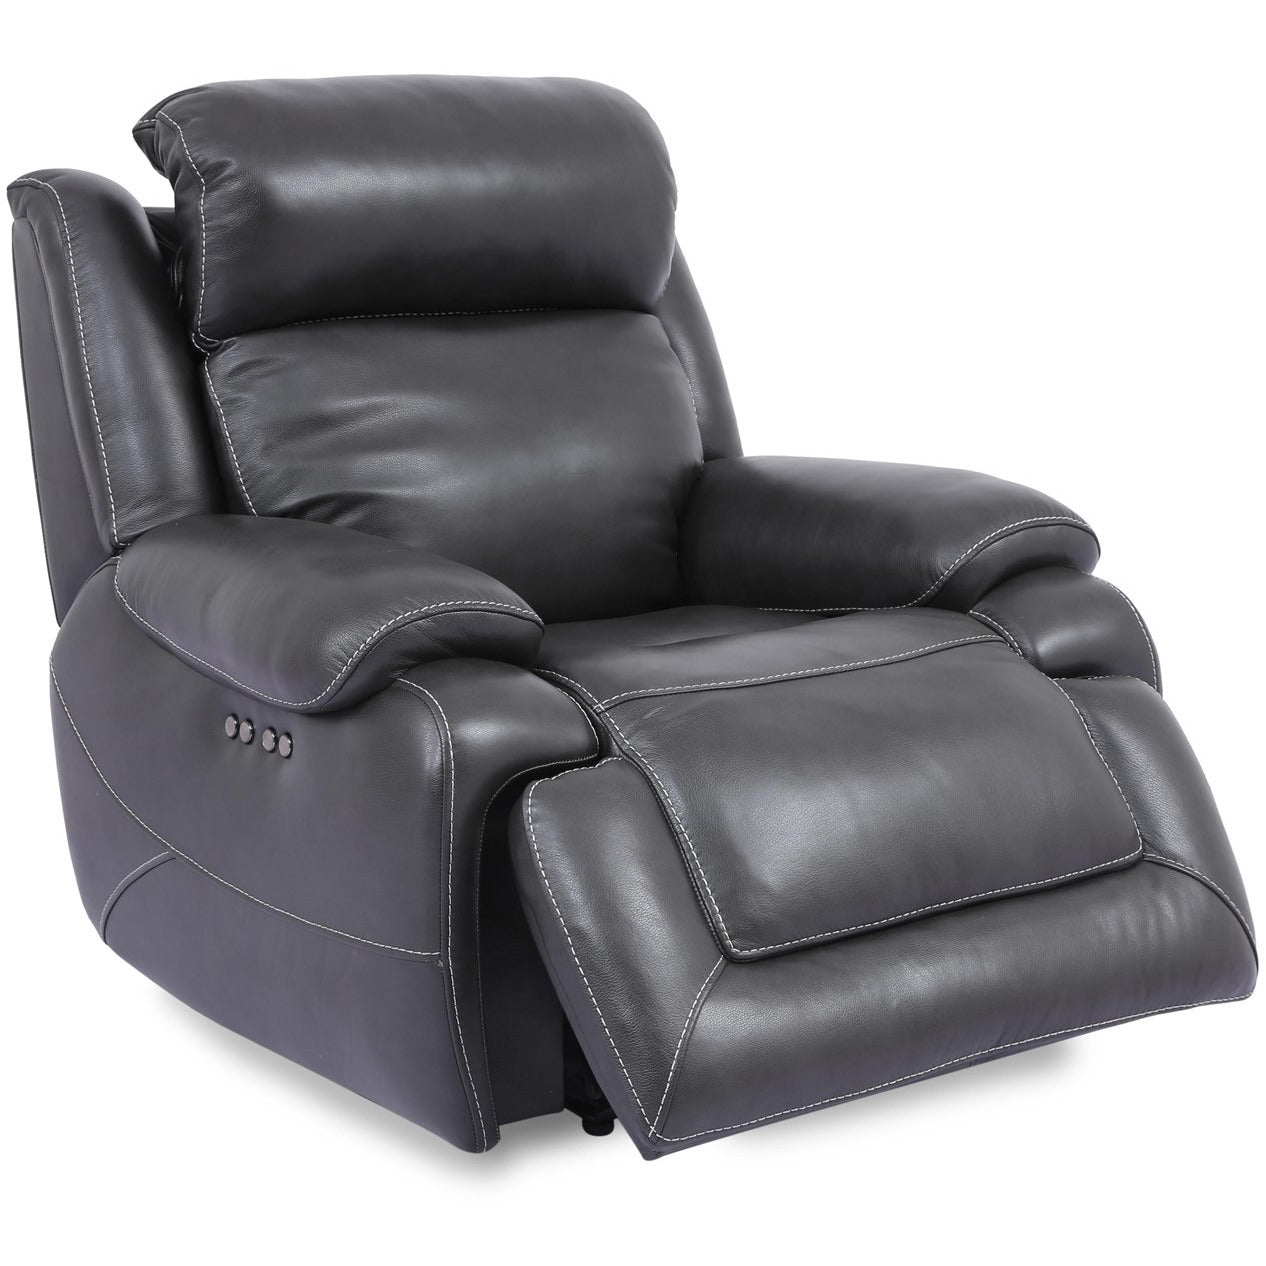 Boulder Power Recliner